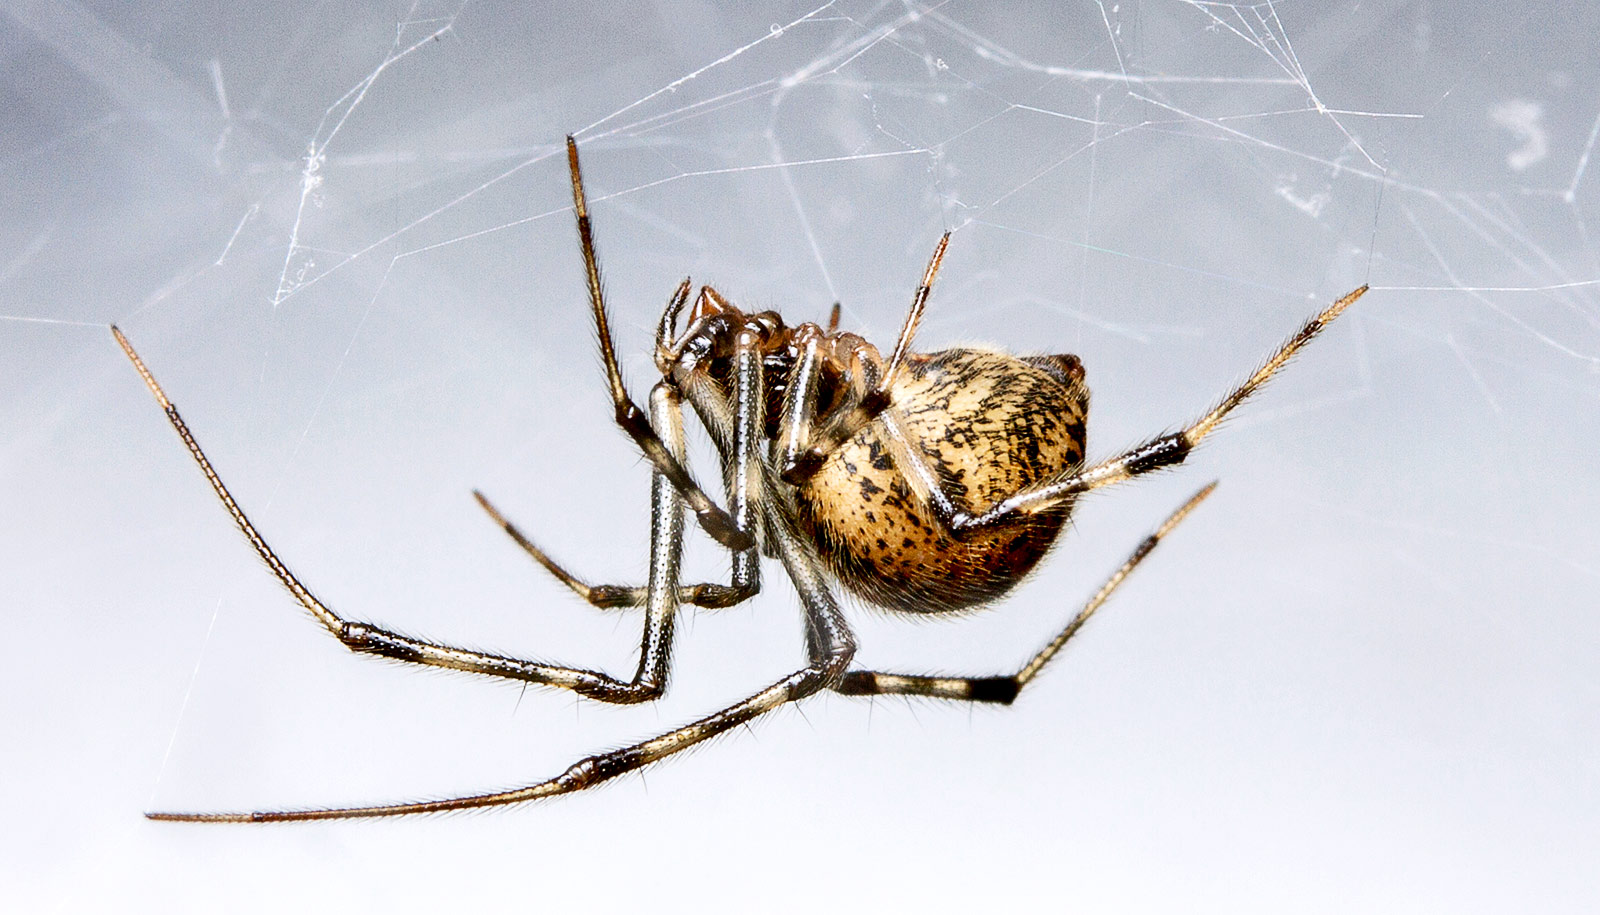 Listen: Expert debunks scary myths about spiders